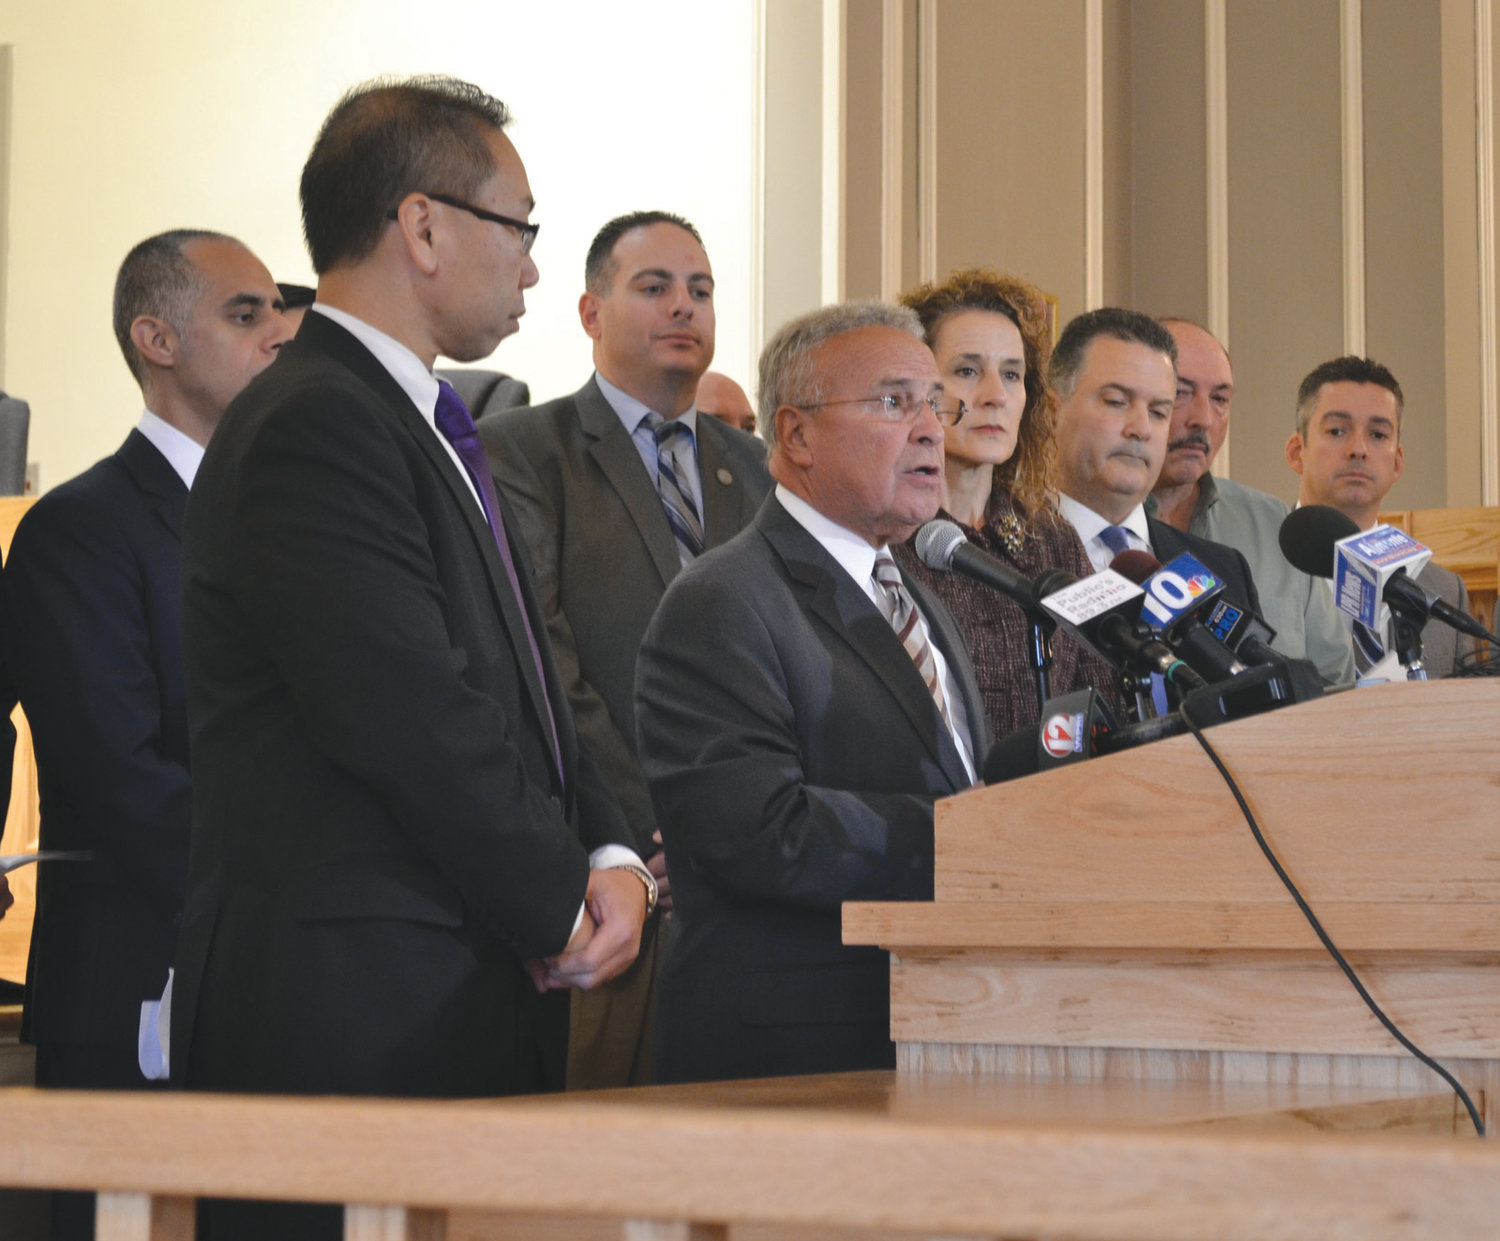 LOCAL LEADERS: North Providence Mayor Charles Lombardi addresses members of the media during Tuesday's press conference.